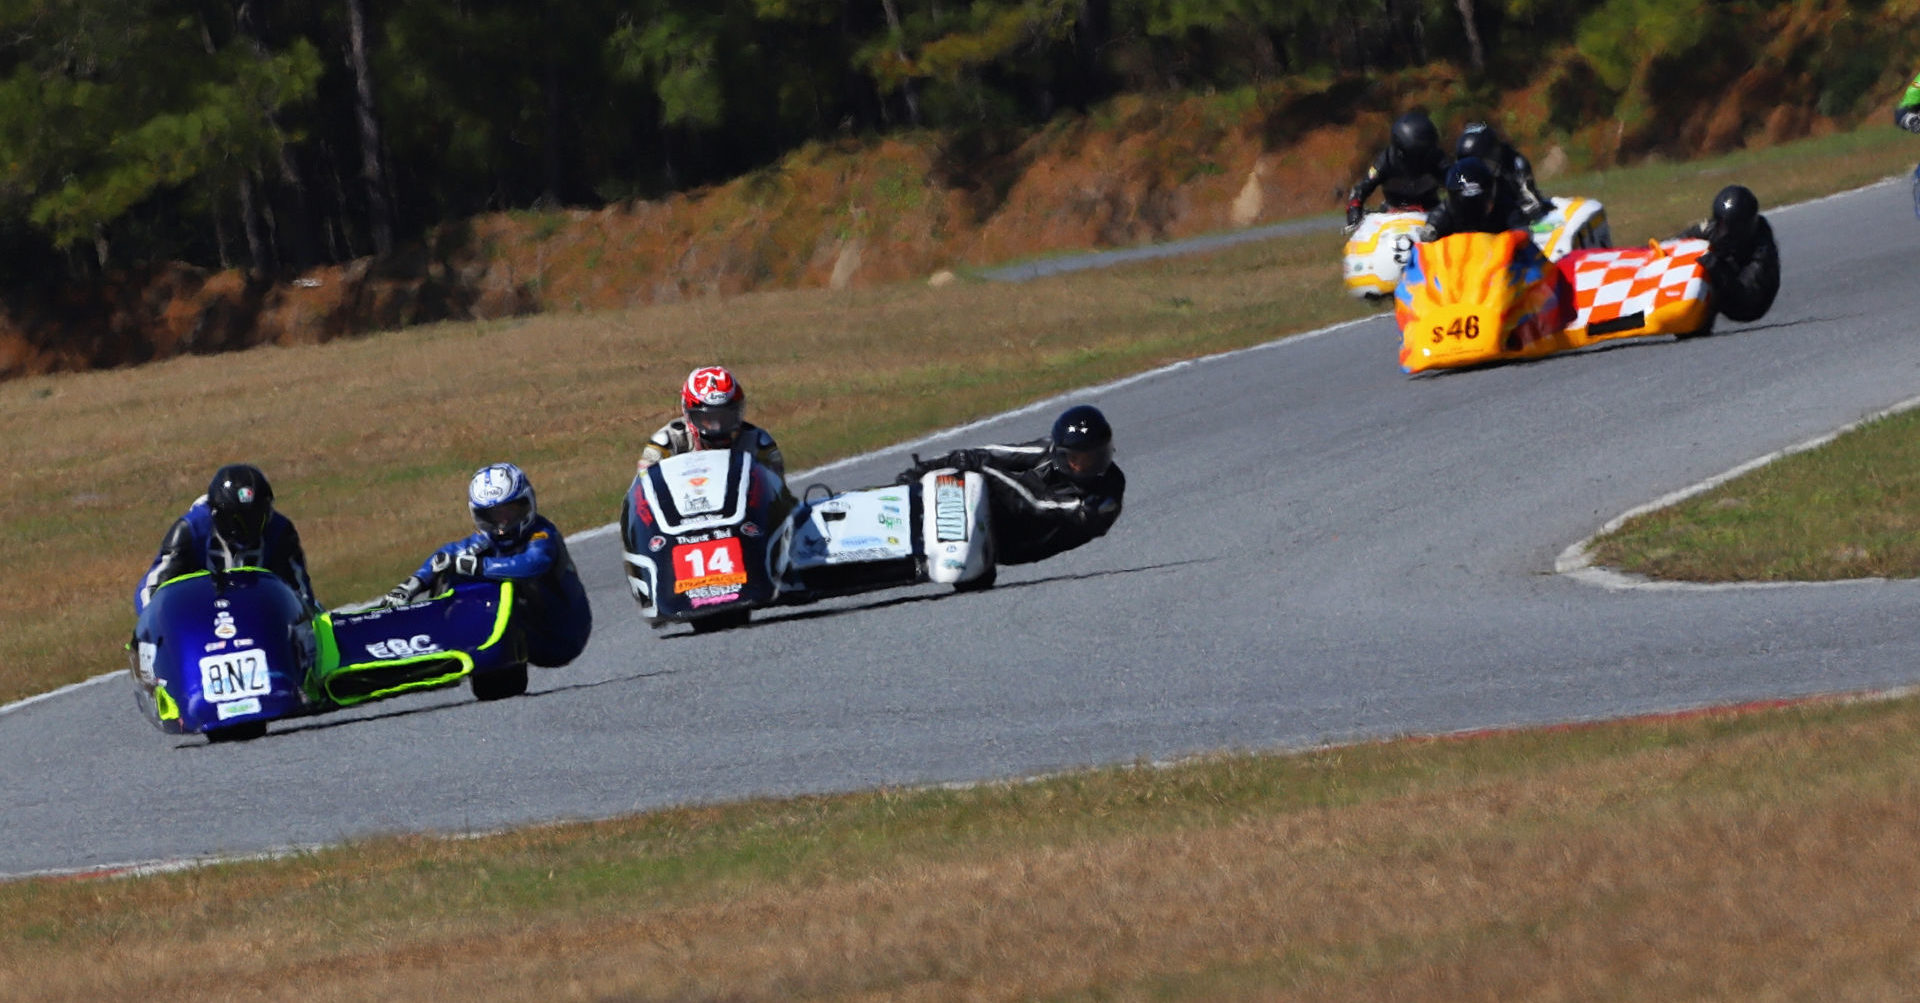 AHRMA sidecar racers Tony Doukas/Lisa Doukas (8NZ), Peter Essaff/Johnny Crown (14), Dale Lavendar/Hunter Longshore (46), and Nick Bailey/Adam Cramer (9) in action in 2020 at Roebling Road Raceway. Photo by etechphoto.com, courtesy AHRMA.